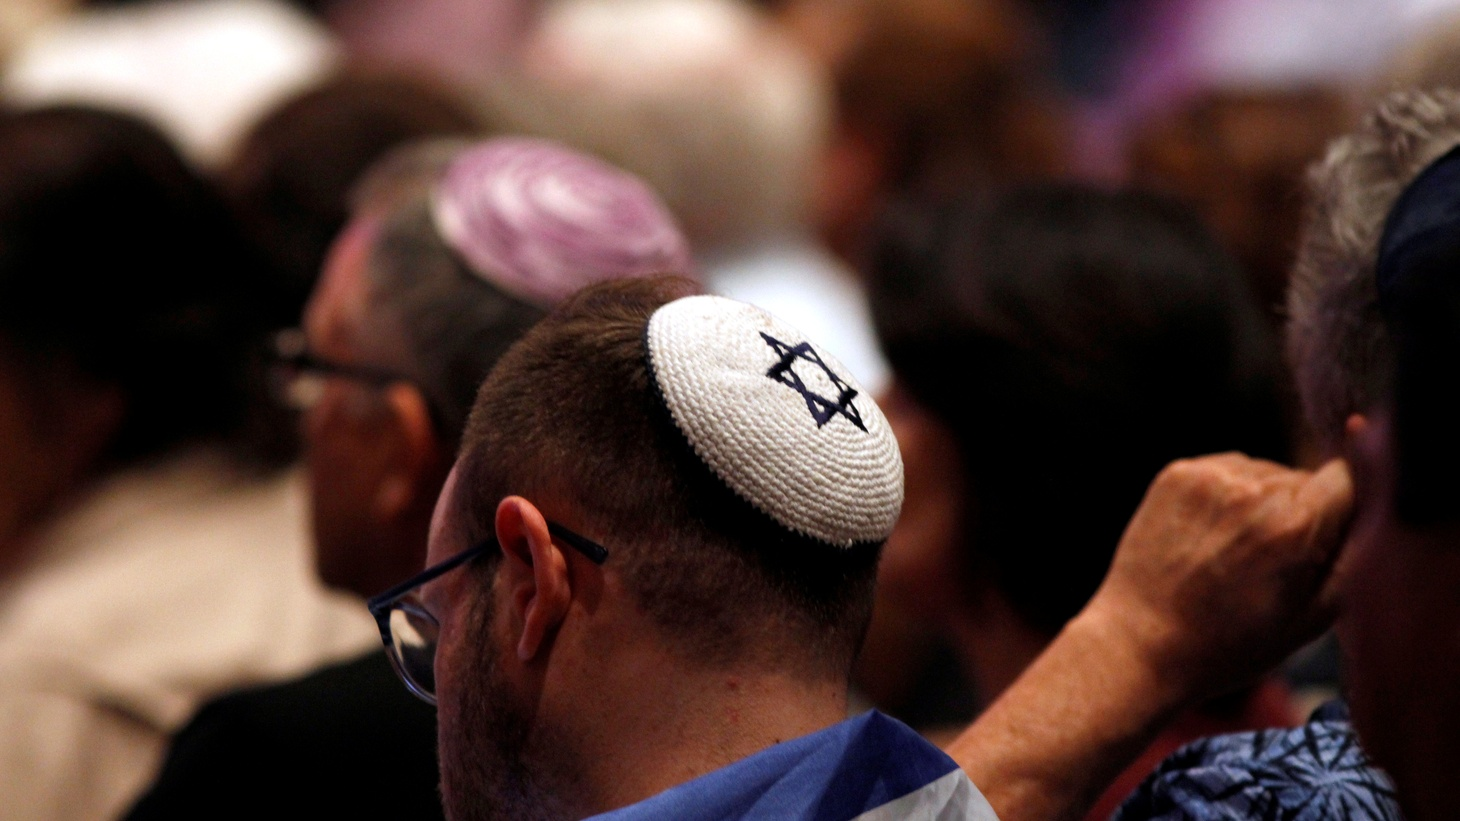 A candlelight vigil is held at Rancho Bernardo Community Presbyterian Church for victims of a shooting incident at the Congregation Chabad synagogue in Poway, north of San Diego, California, U.S. April 27, 2019.